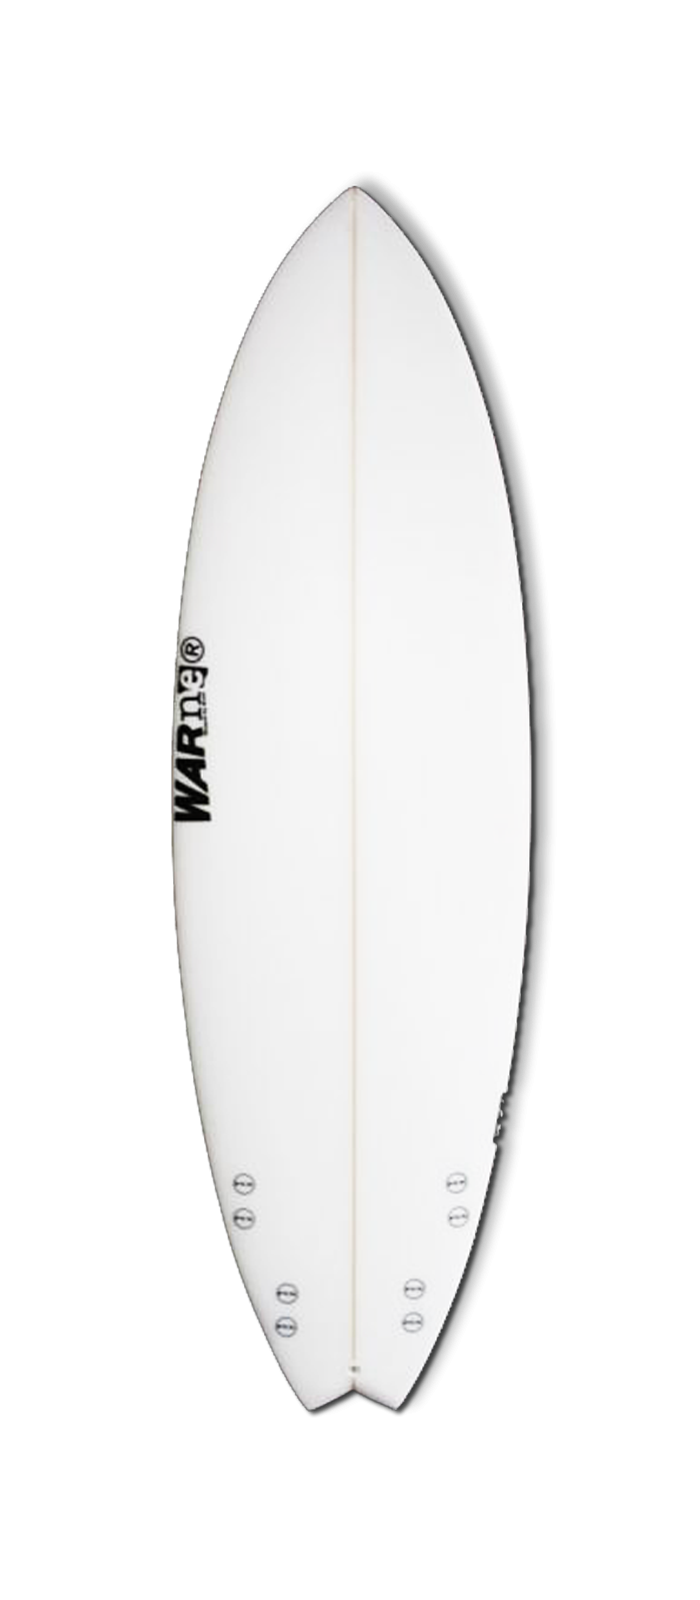 FTR surfboard model deck